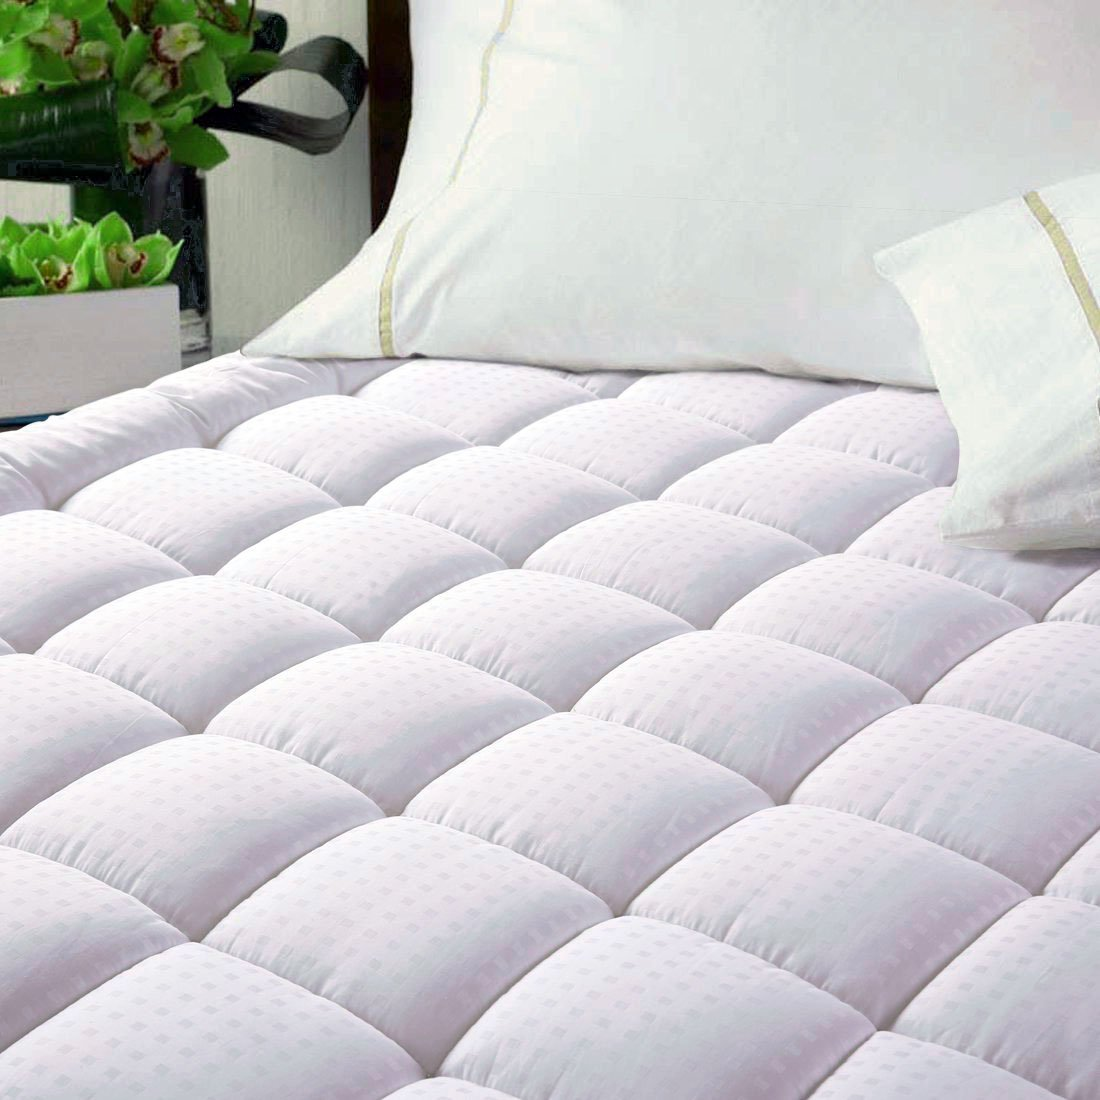 EASELAND Luxury Hotel Quilted Mattress Pad Cover 300TC 100% Cotton Top